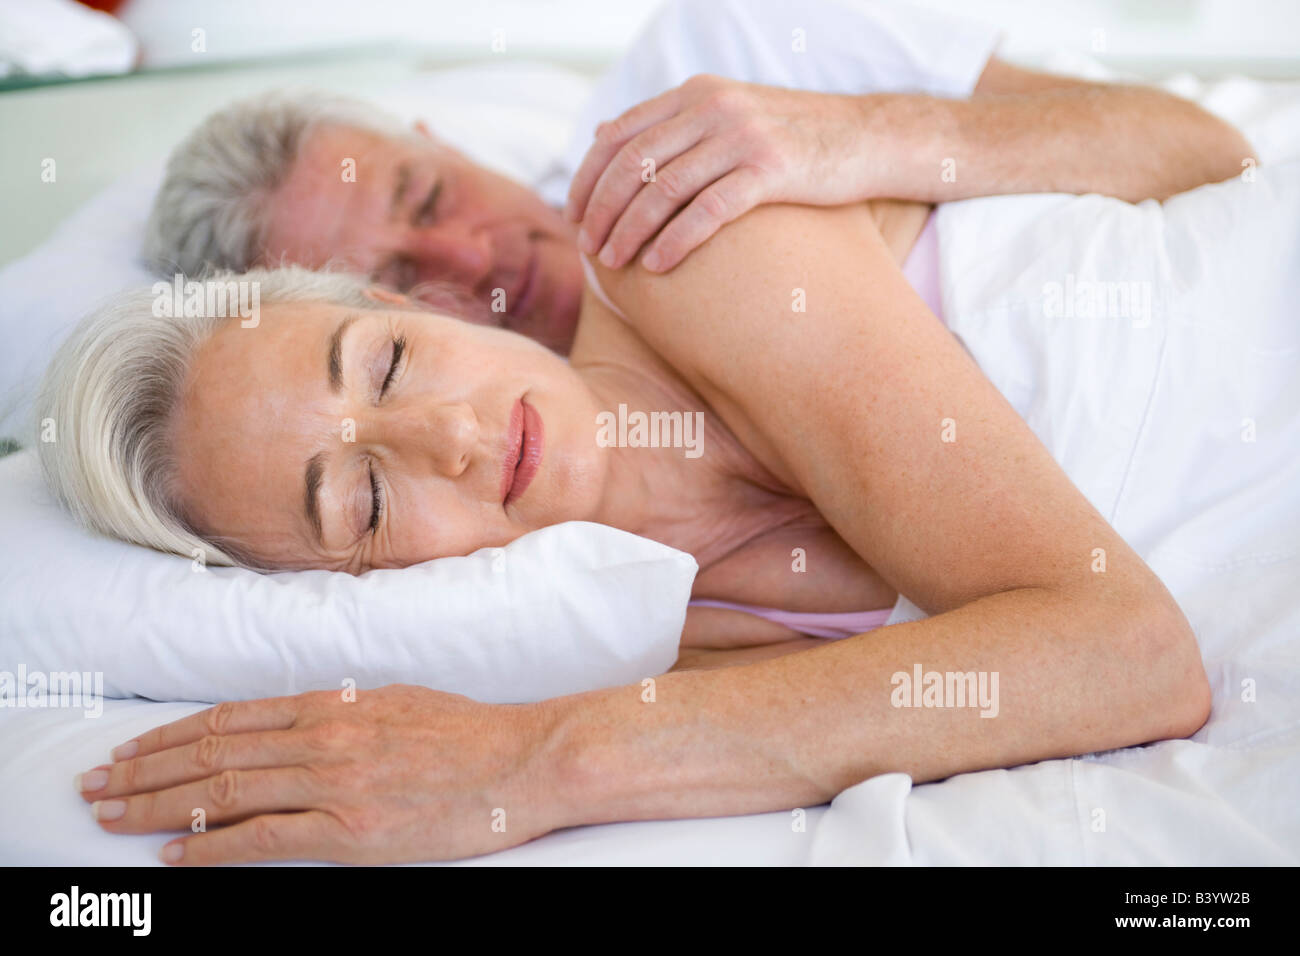 Couple lying in bed together sleeping - Stock Image